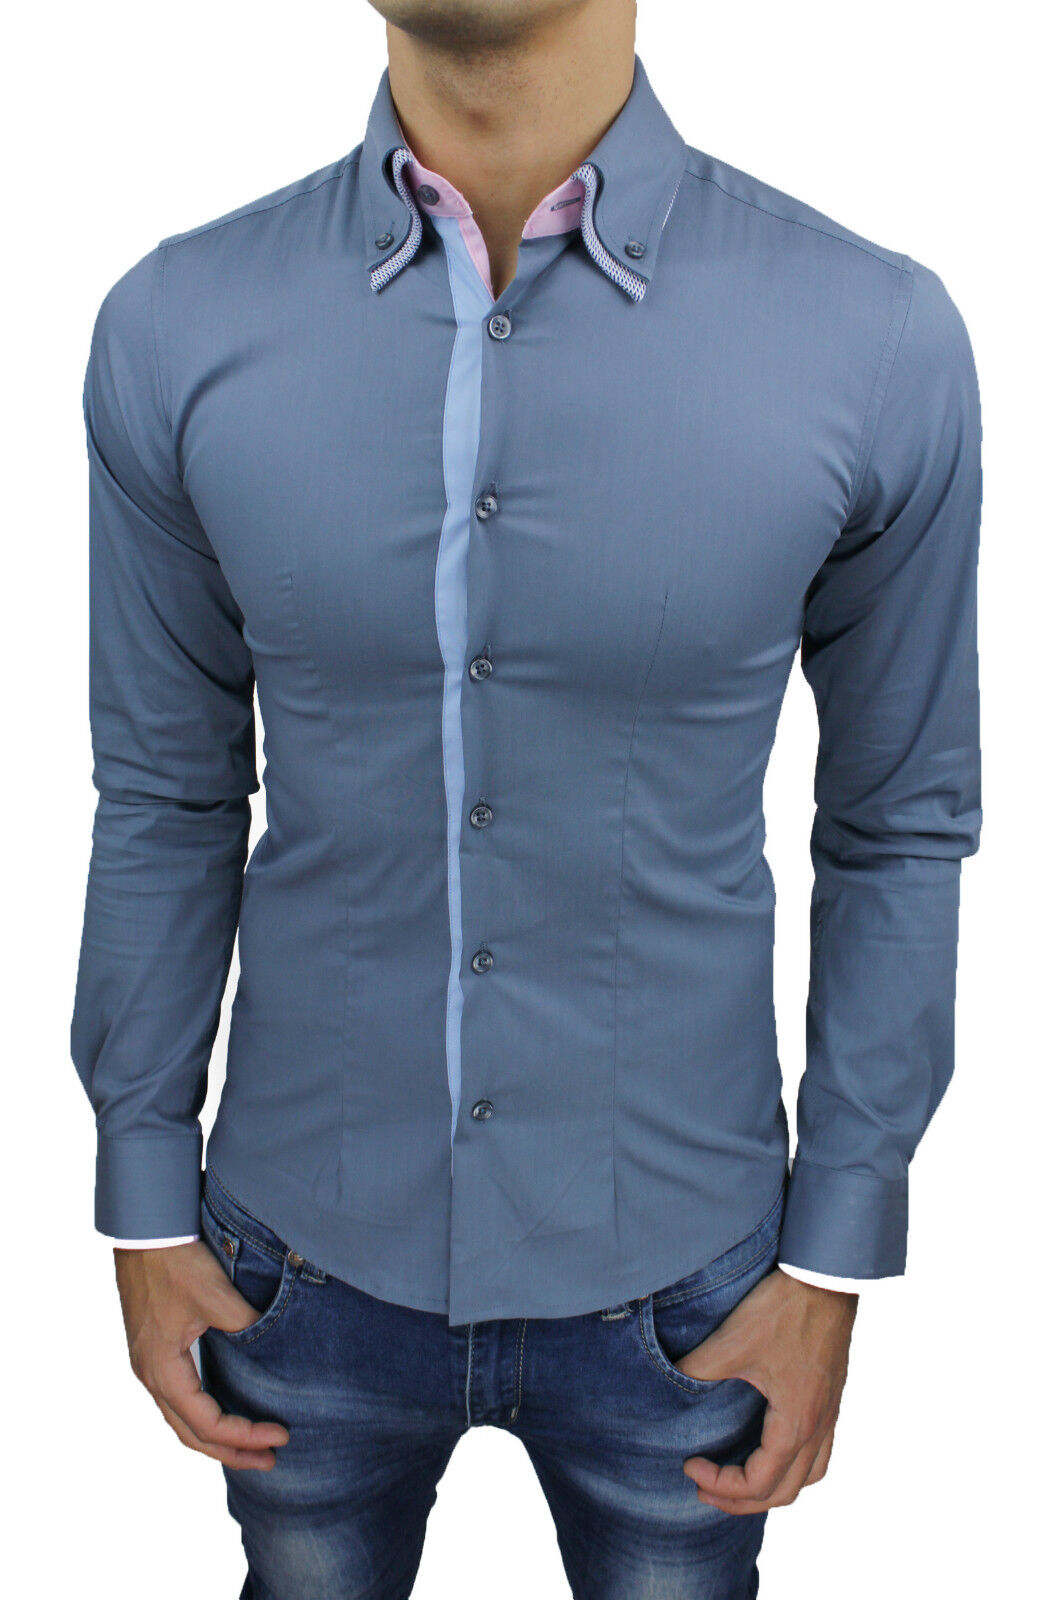 the best attitude eefd7 6b31b CAMICIA UOMO CASUAL GRIGIO BUTTON DOWN SLIM FIT ADERENTE ...